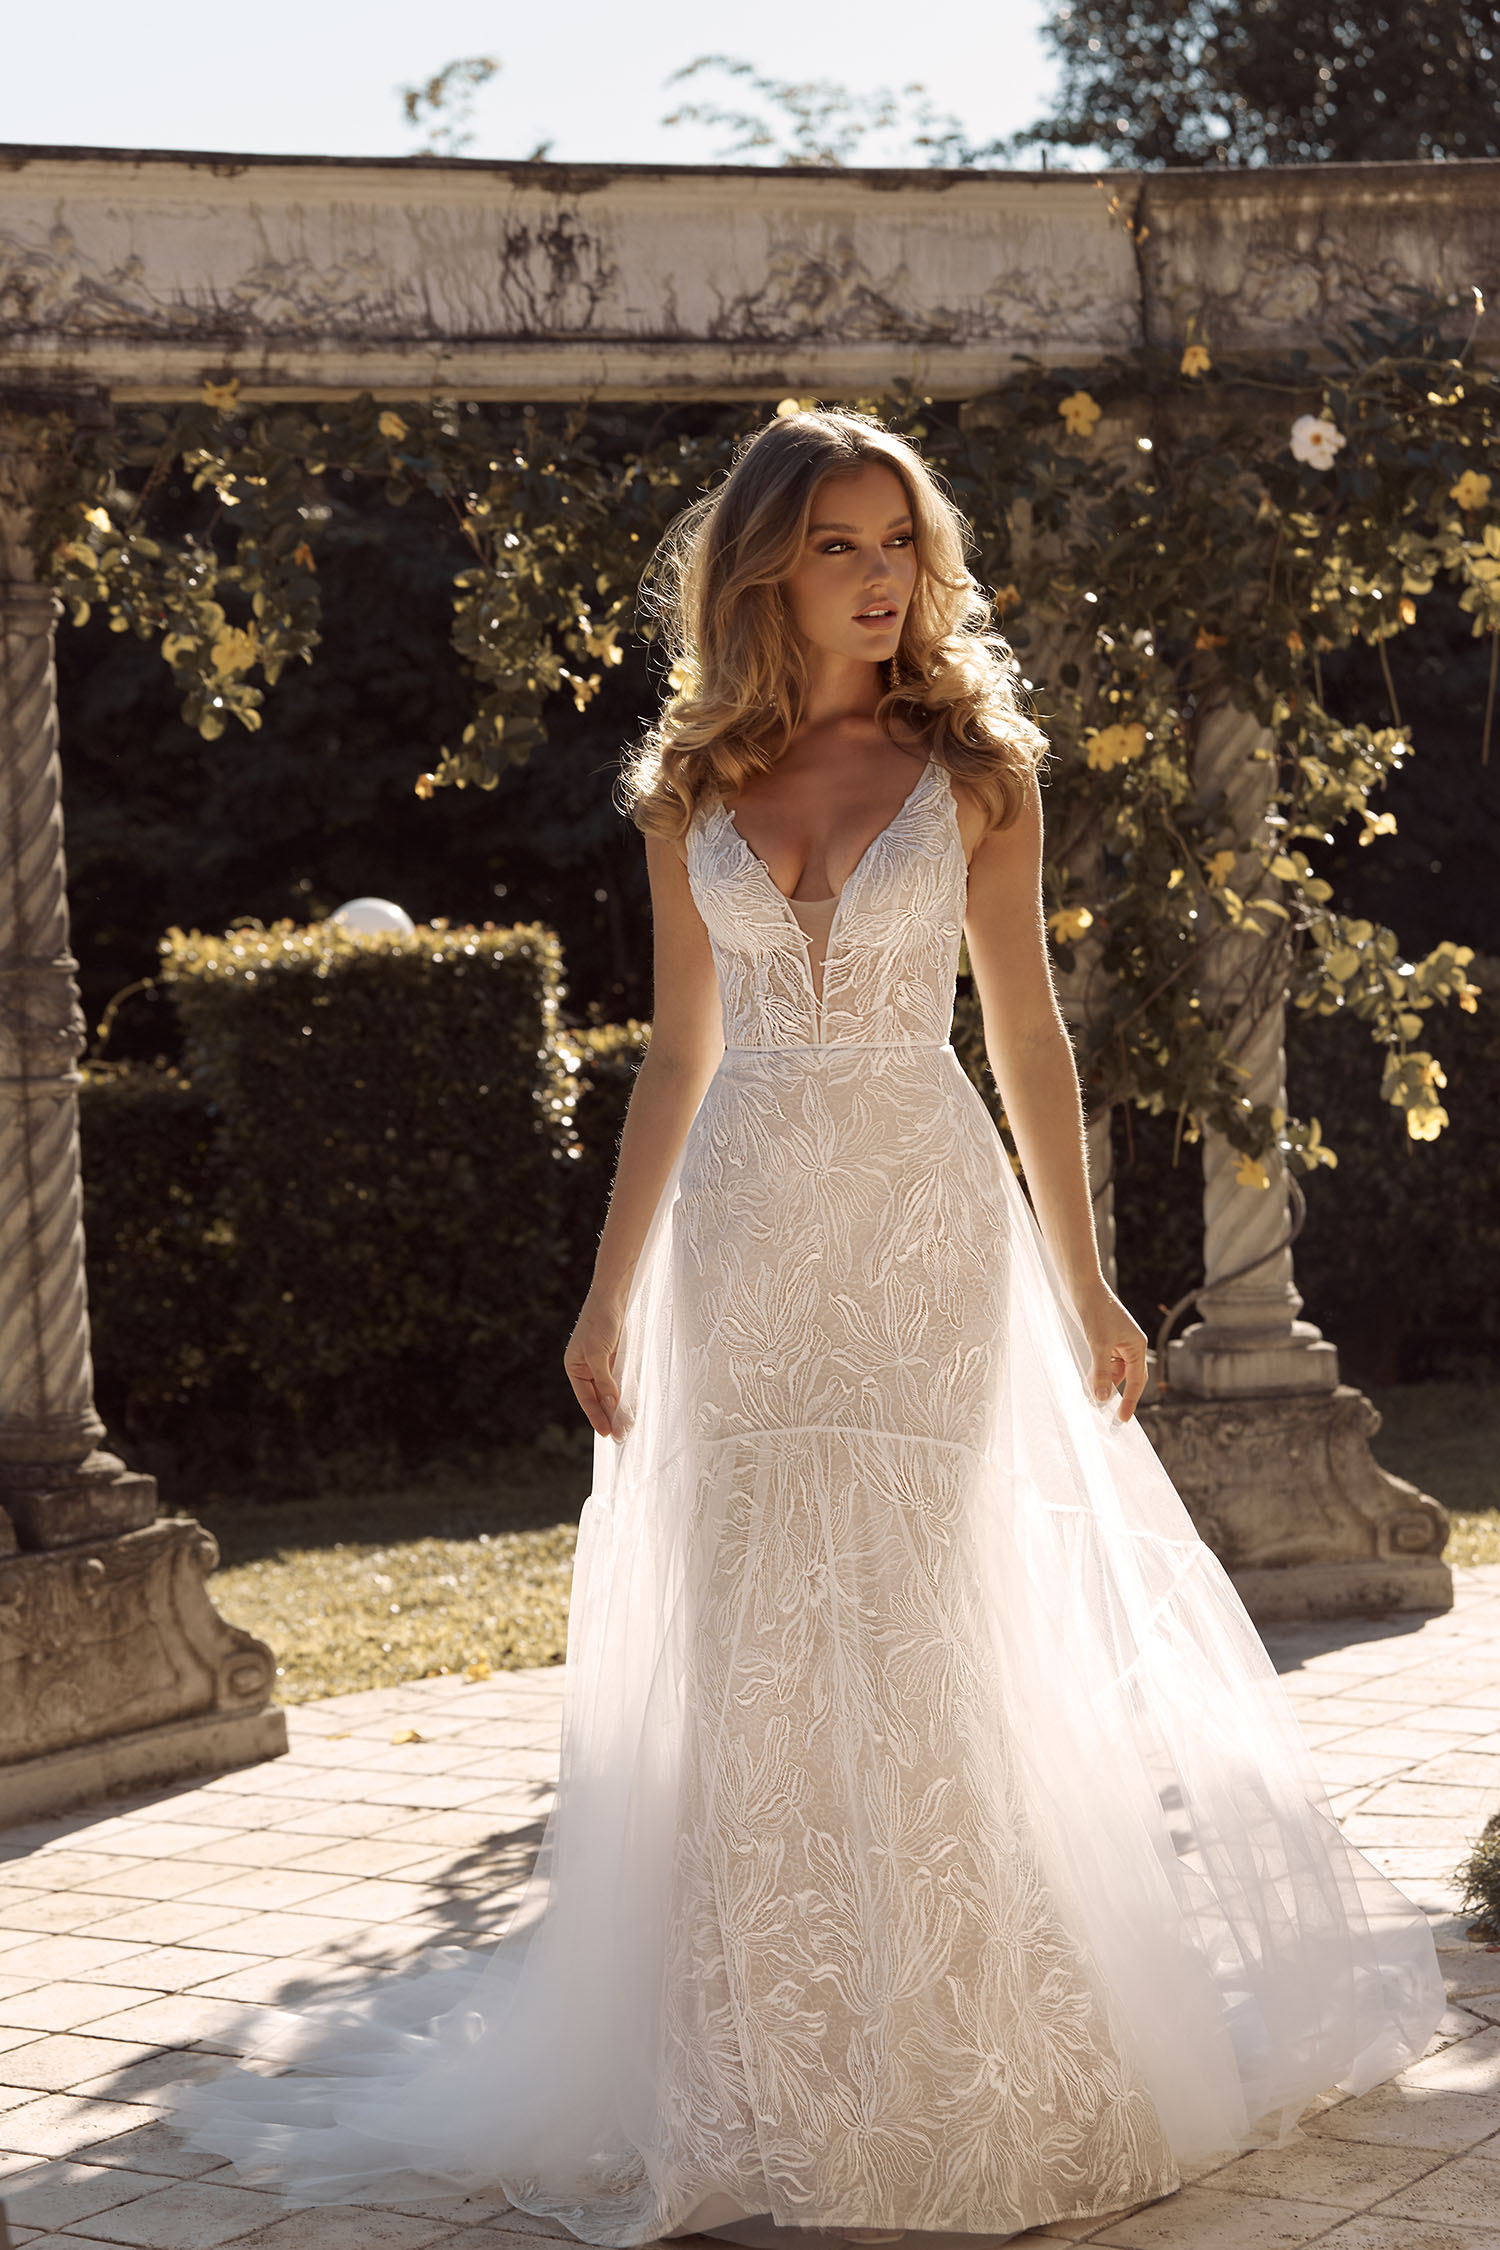 BAILEY ML19377 FULL LENGTH SLIM A-LINE SILHOUETTE FLORAL LACE WITH PLUNGING V NECKLINE AND FIT FLARE SKIRT WITH DETACHABLE OVERSKIRT INCLUDED WEDDING DRESS MADI LANE BRIDAL7